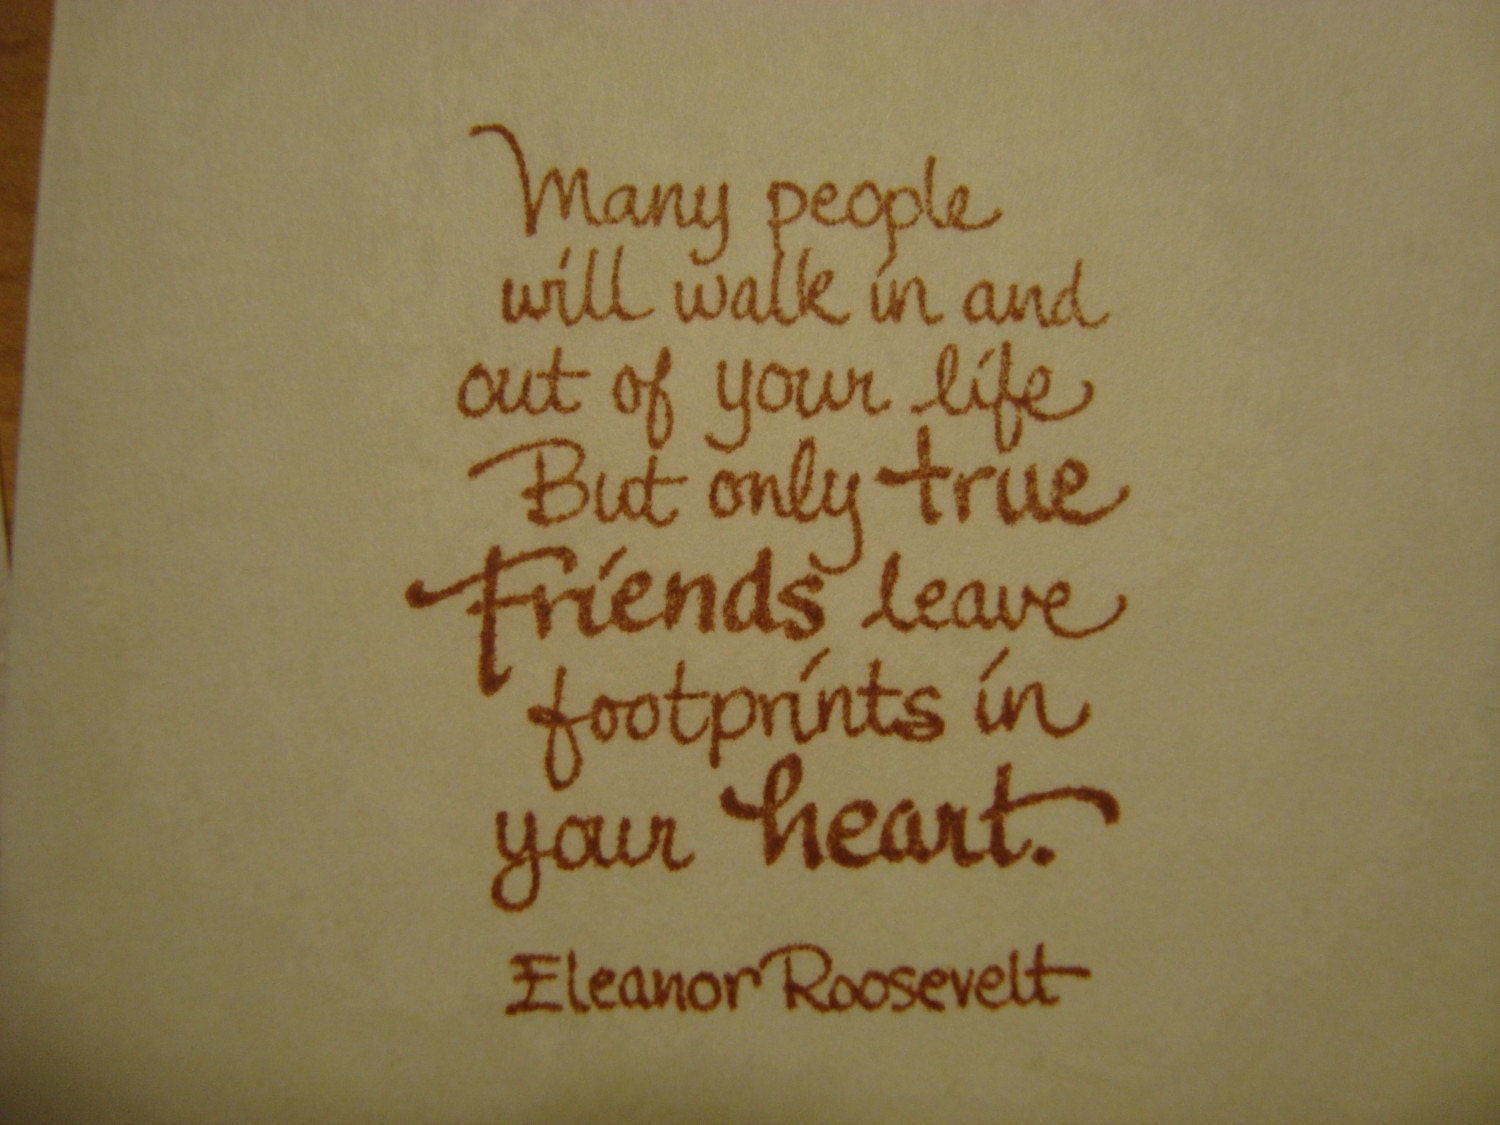 Friendship Quotes Leaving : Eleanor roosevelt quote on friendship set of delicate note